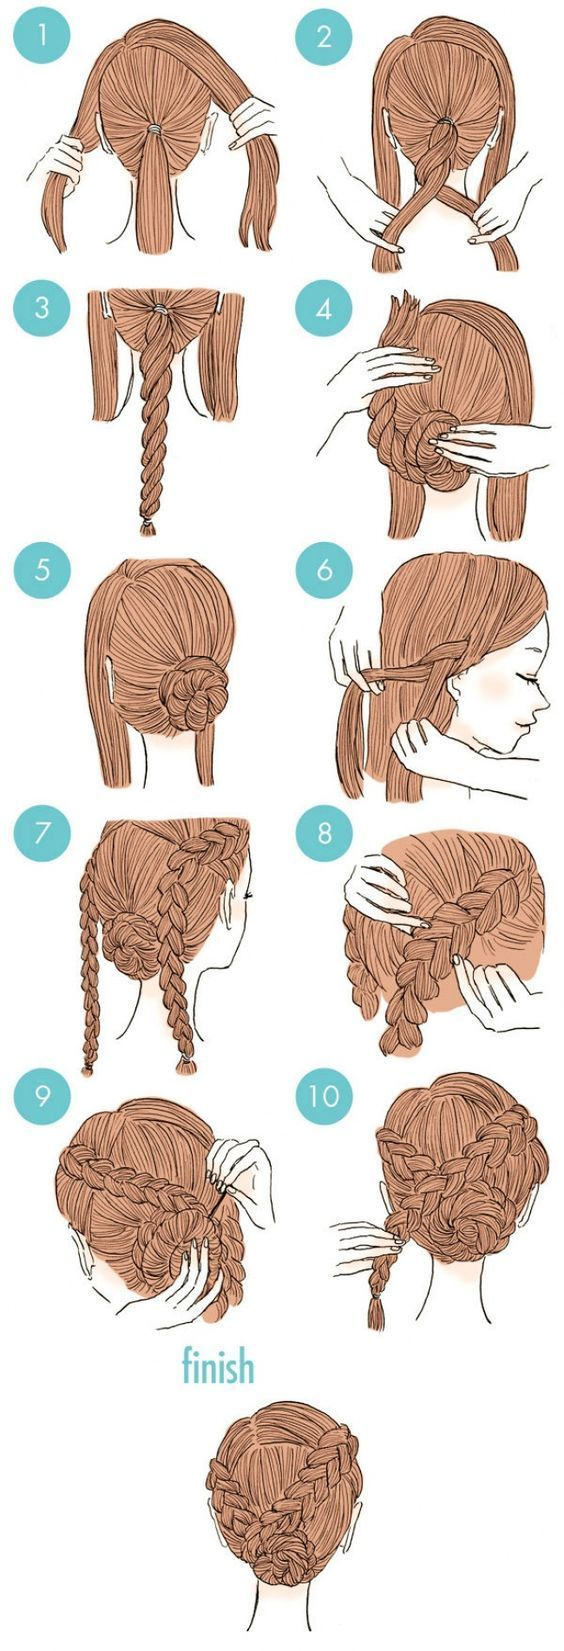 easy wedding hairstyles best photos - Page 3 of 4 | Easy wedding ...